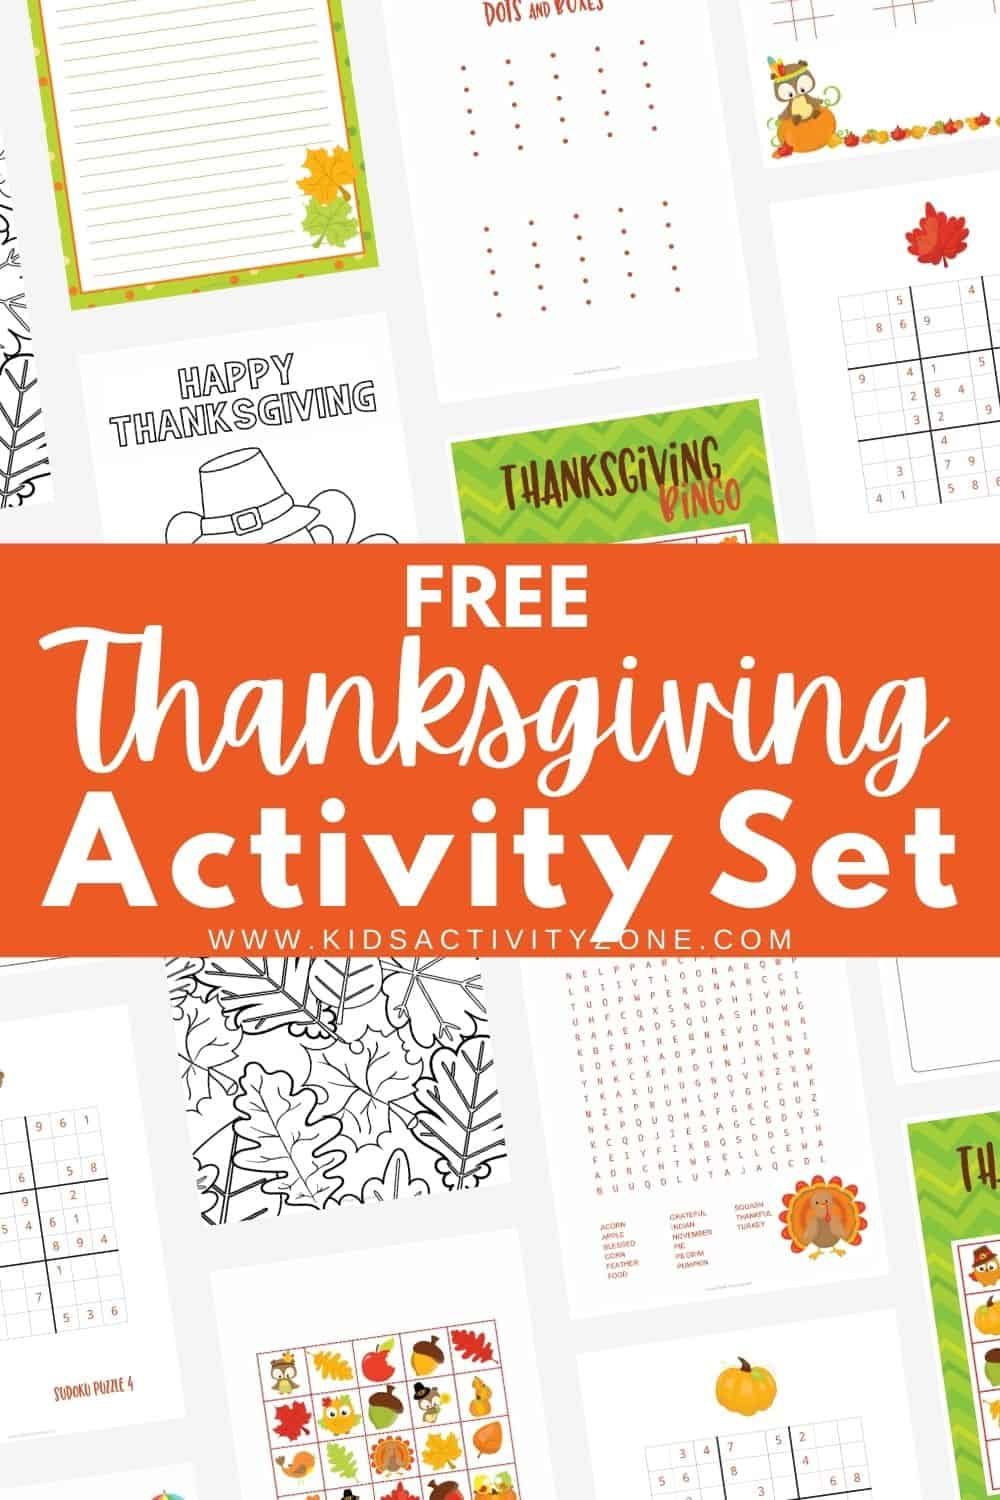 Thanksgiving Activities Printable Set is a free set of Thanksgiving Bingo, Word Search, Sudoku puzzles, Tic Tac Toe and more! It's the perfect after Thanksgiving meal entertainment or for holiday parties.